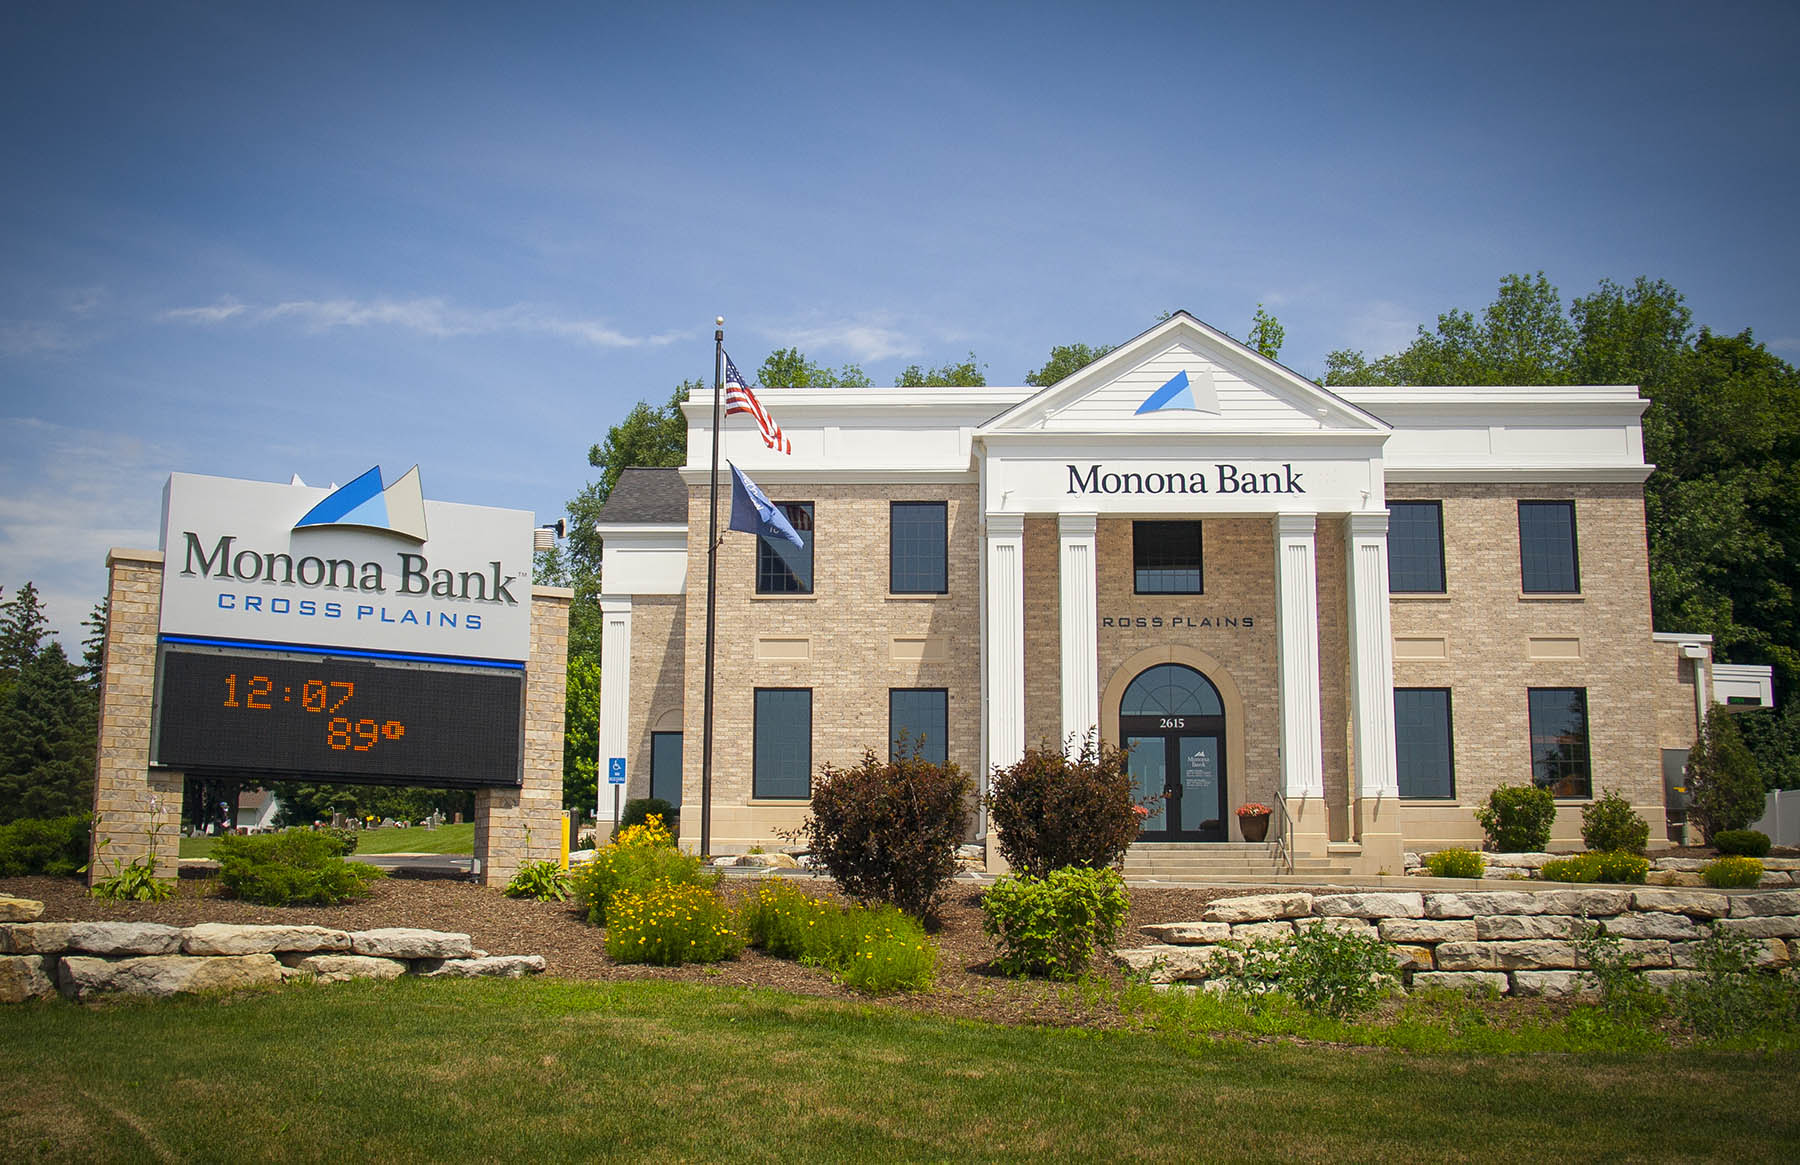 Monona Bank Cross Plains WI